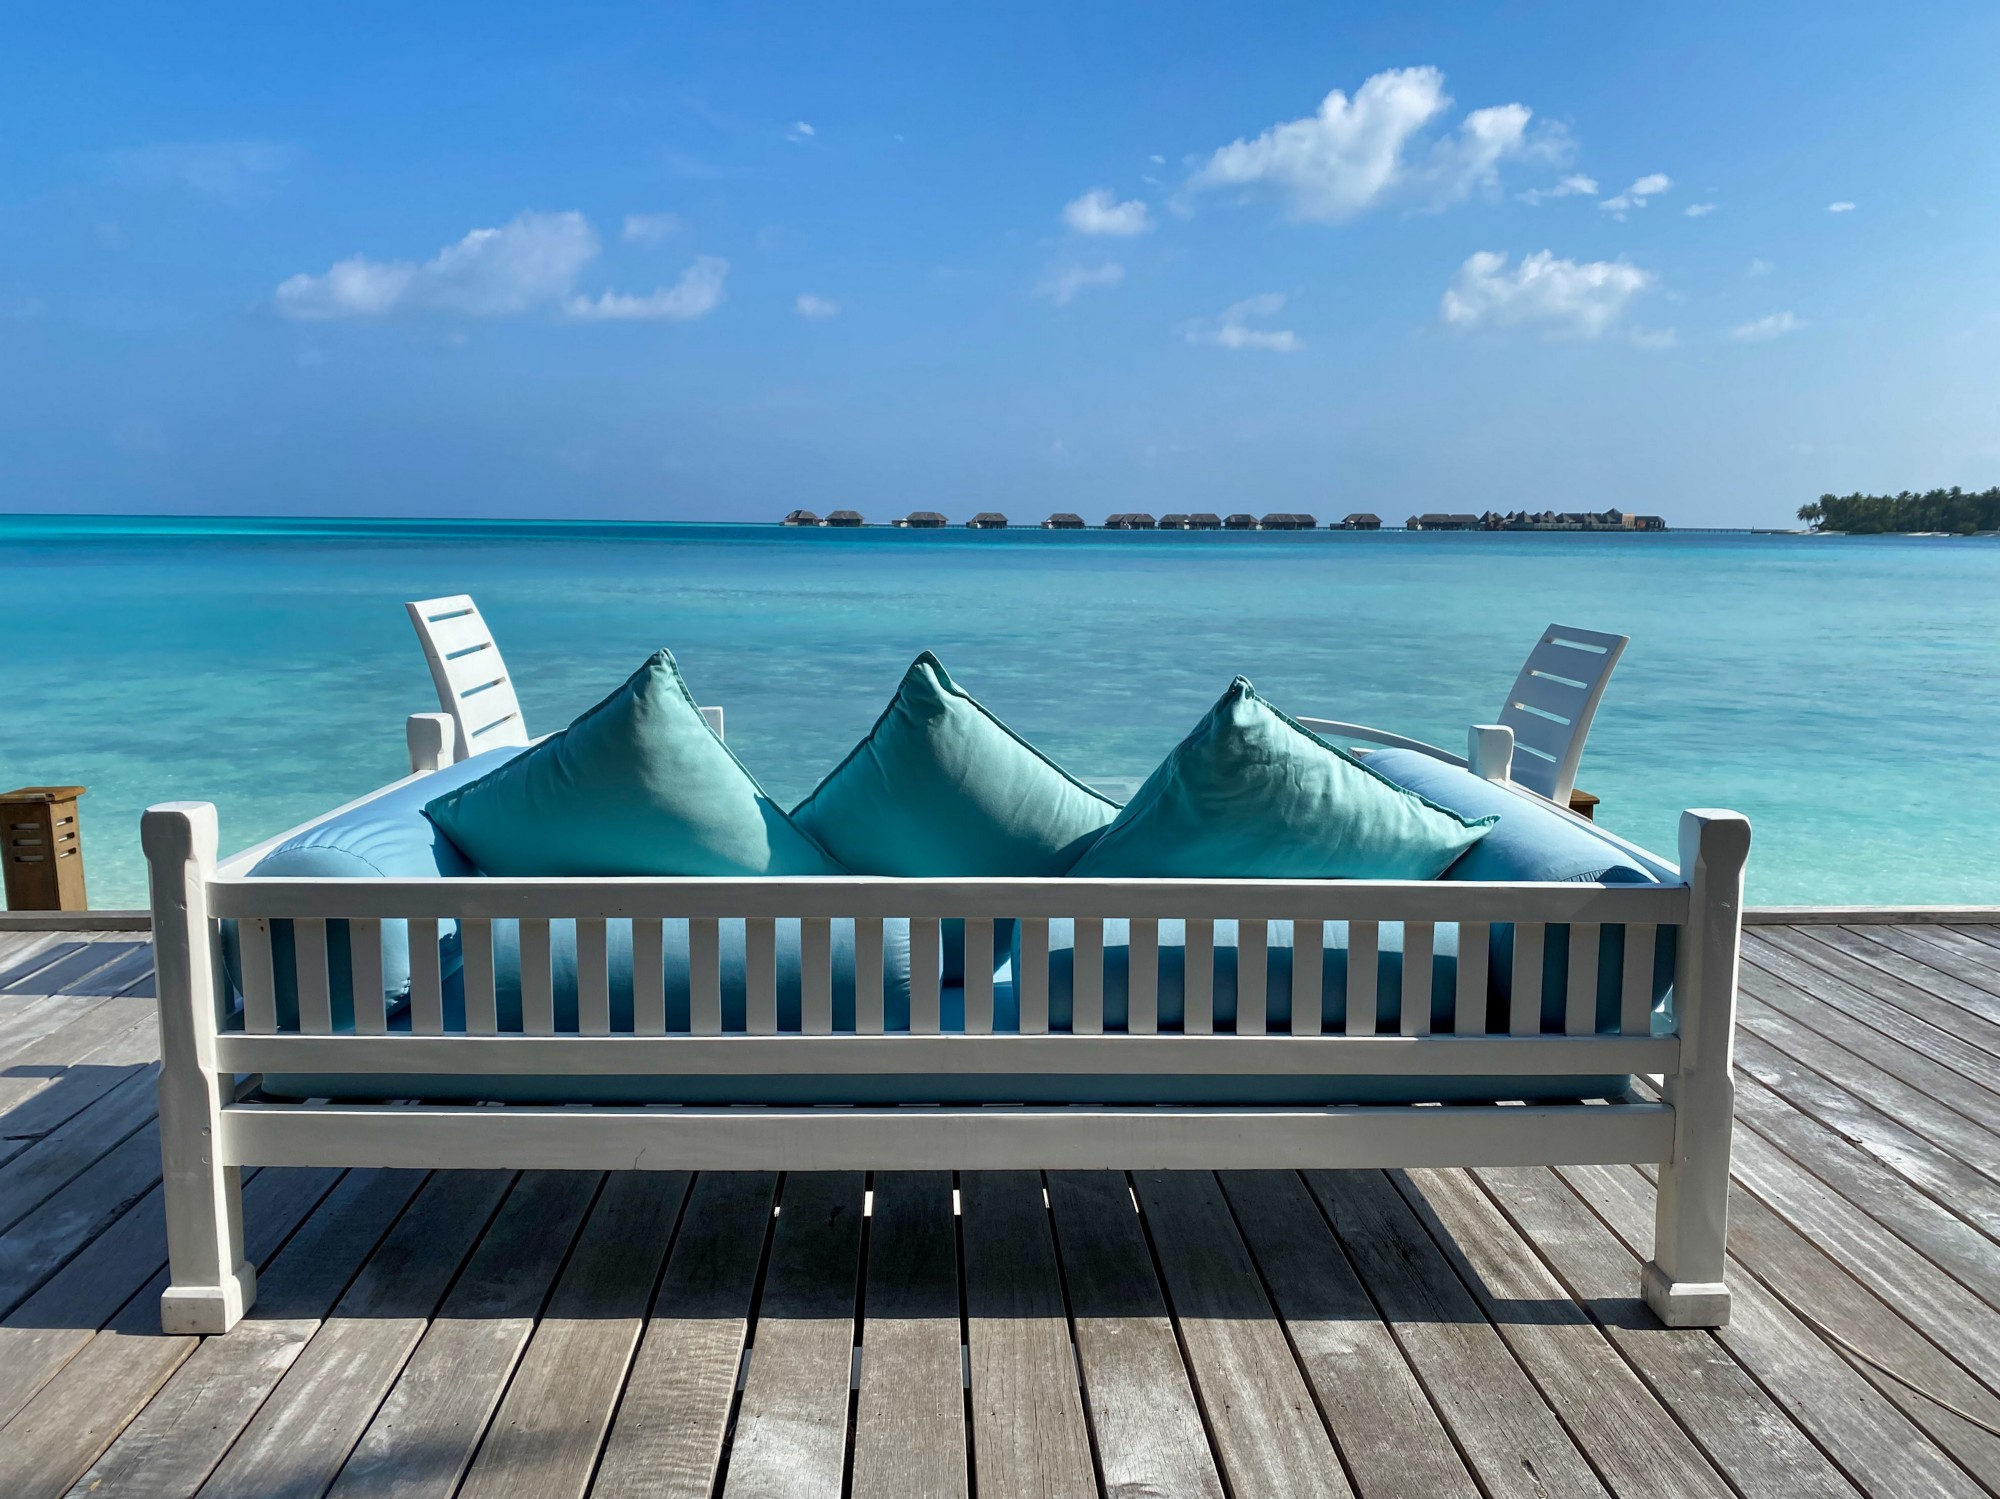 A white bench covered in blue cushions on a deck facing a view of the blue ocean waters